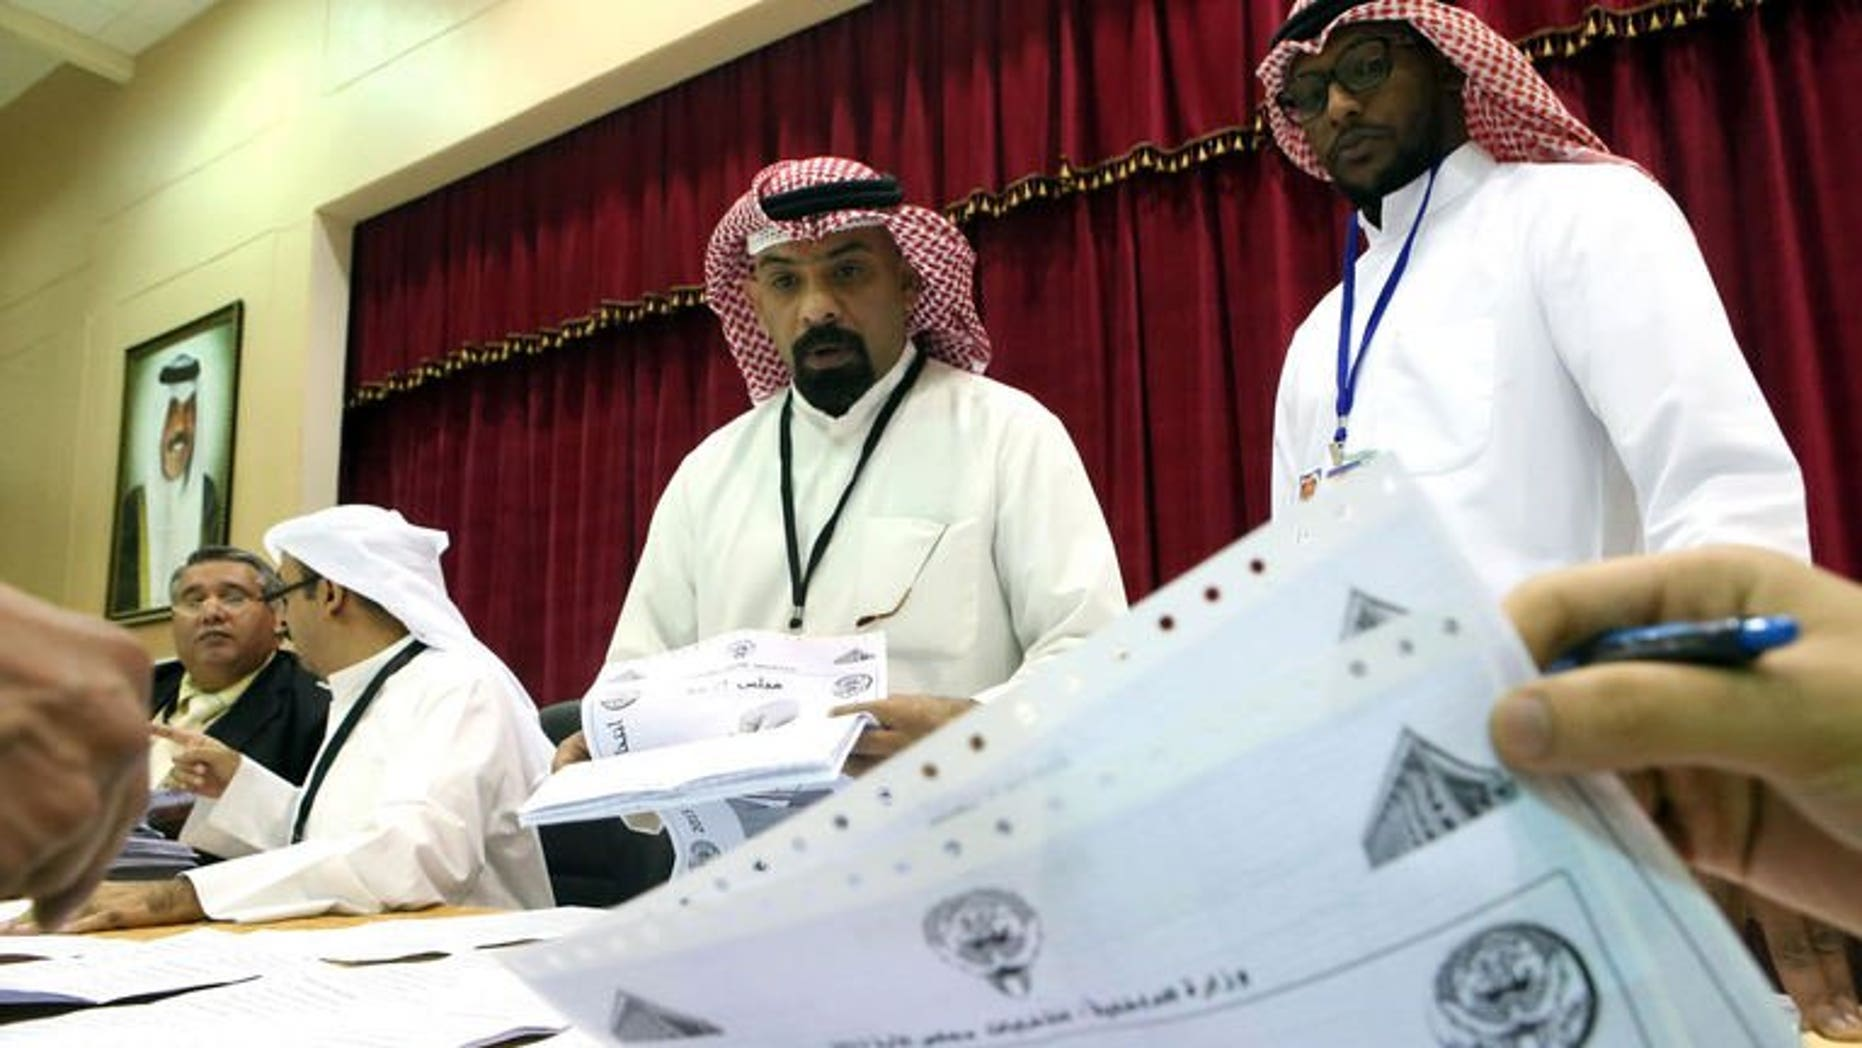 Kuwaiti judges and their aides count the ballots at a polling station after closure of voting in al-Khaldeyya district of Kuwait city, on July 27, 2013. Kuwait's Emir Sheikh Sabah al-Ahmad Al-Sabah on Monday asked the outgoing prime minister to form a new government following polls, the official KUNA news agency reported.